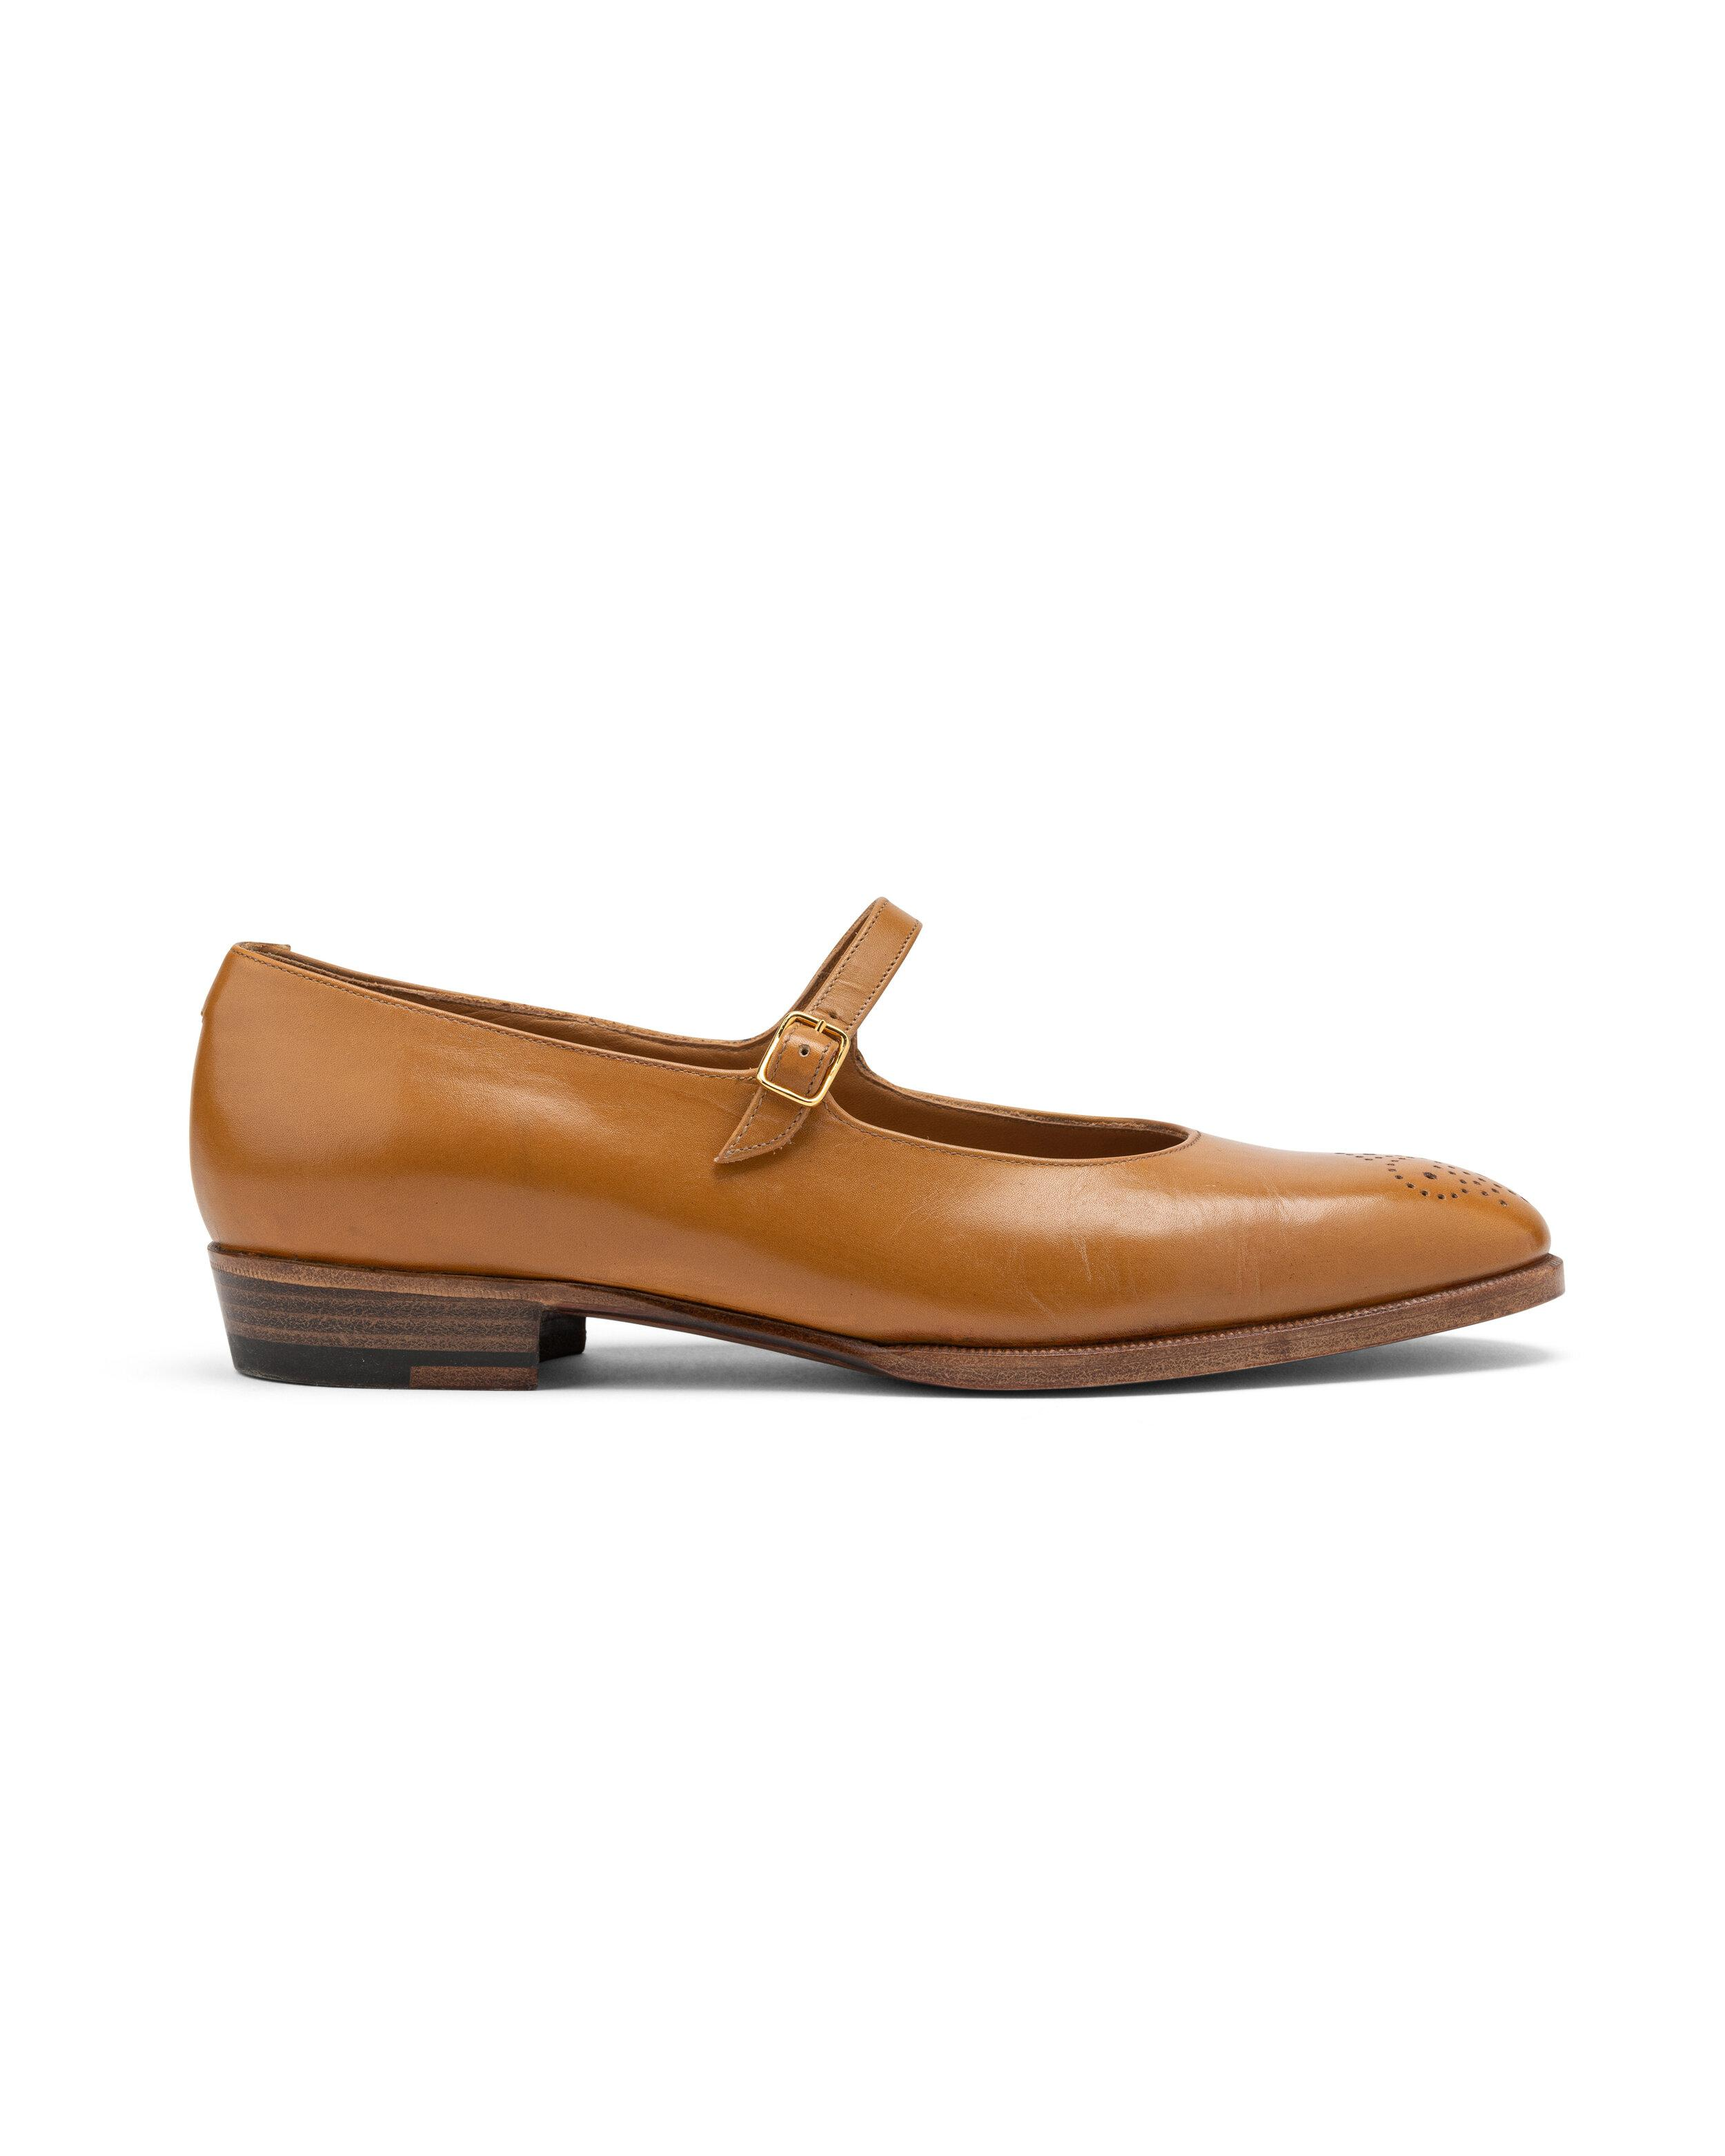 ODPEssentials Classic Mary Jane - Honey Leather 2